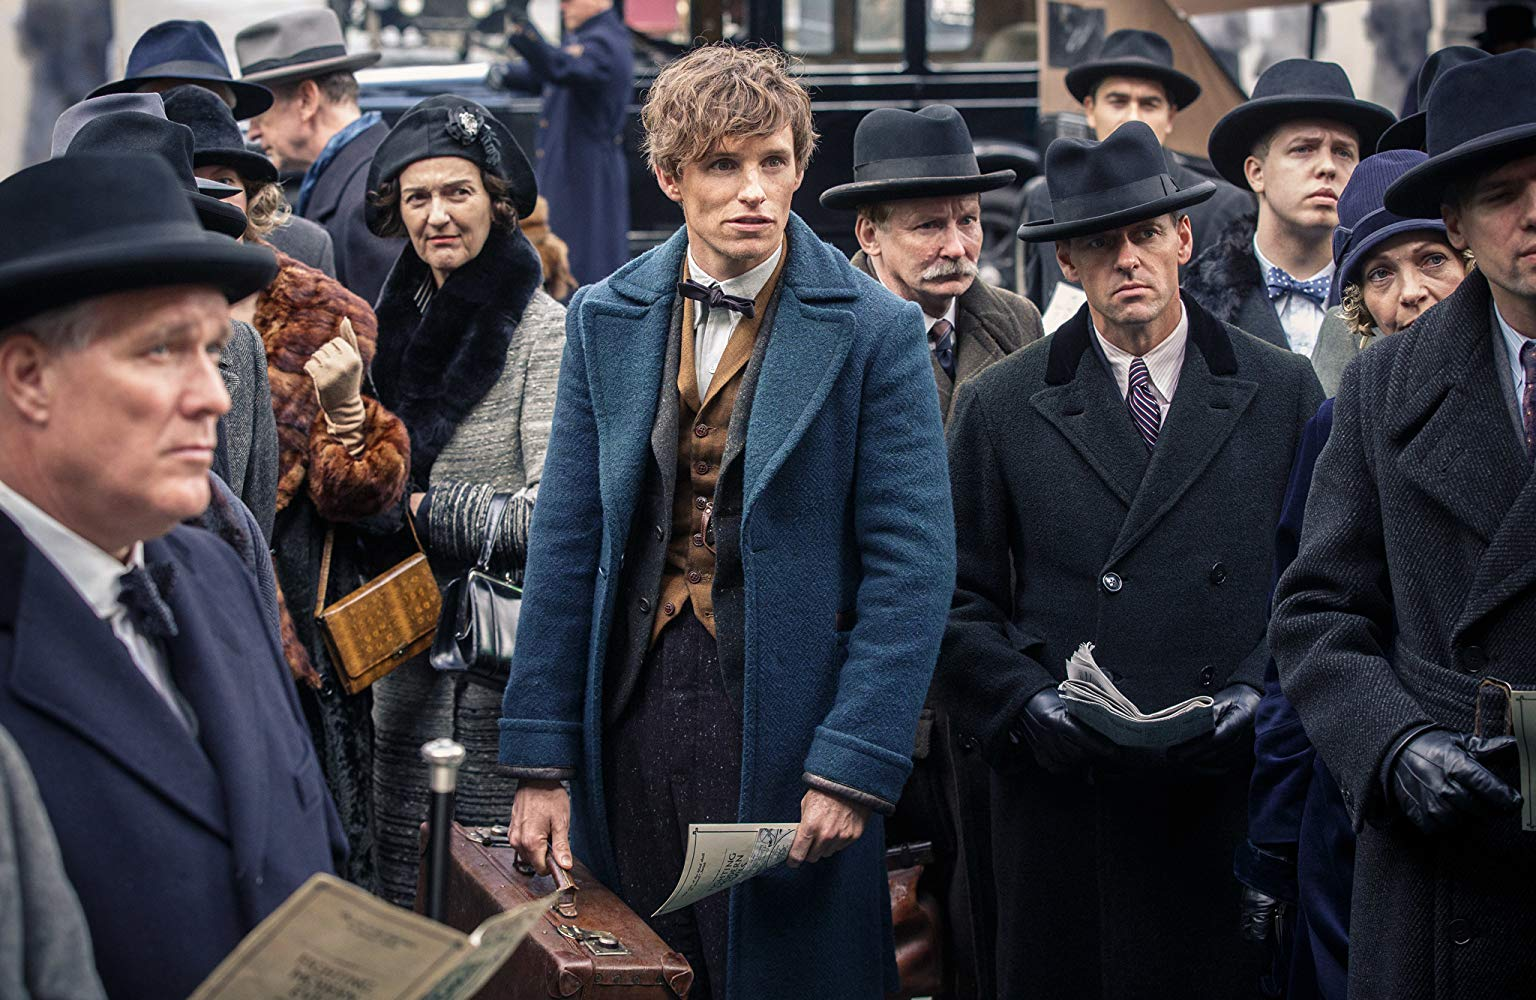 Newt Scamander (Eddie Redmayne) arrives on the streets of New York with suitcase of magical creatures in Fantastic Beasts and Where to Find Them (2016)